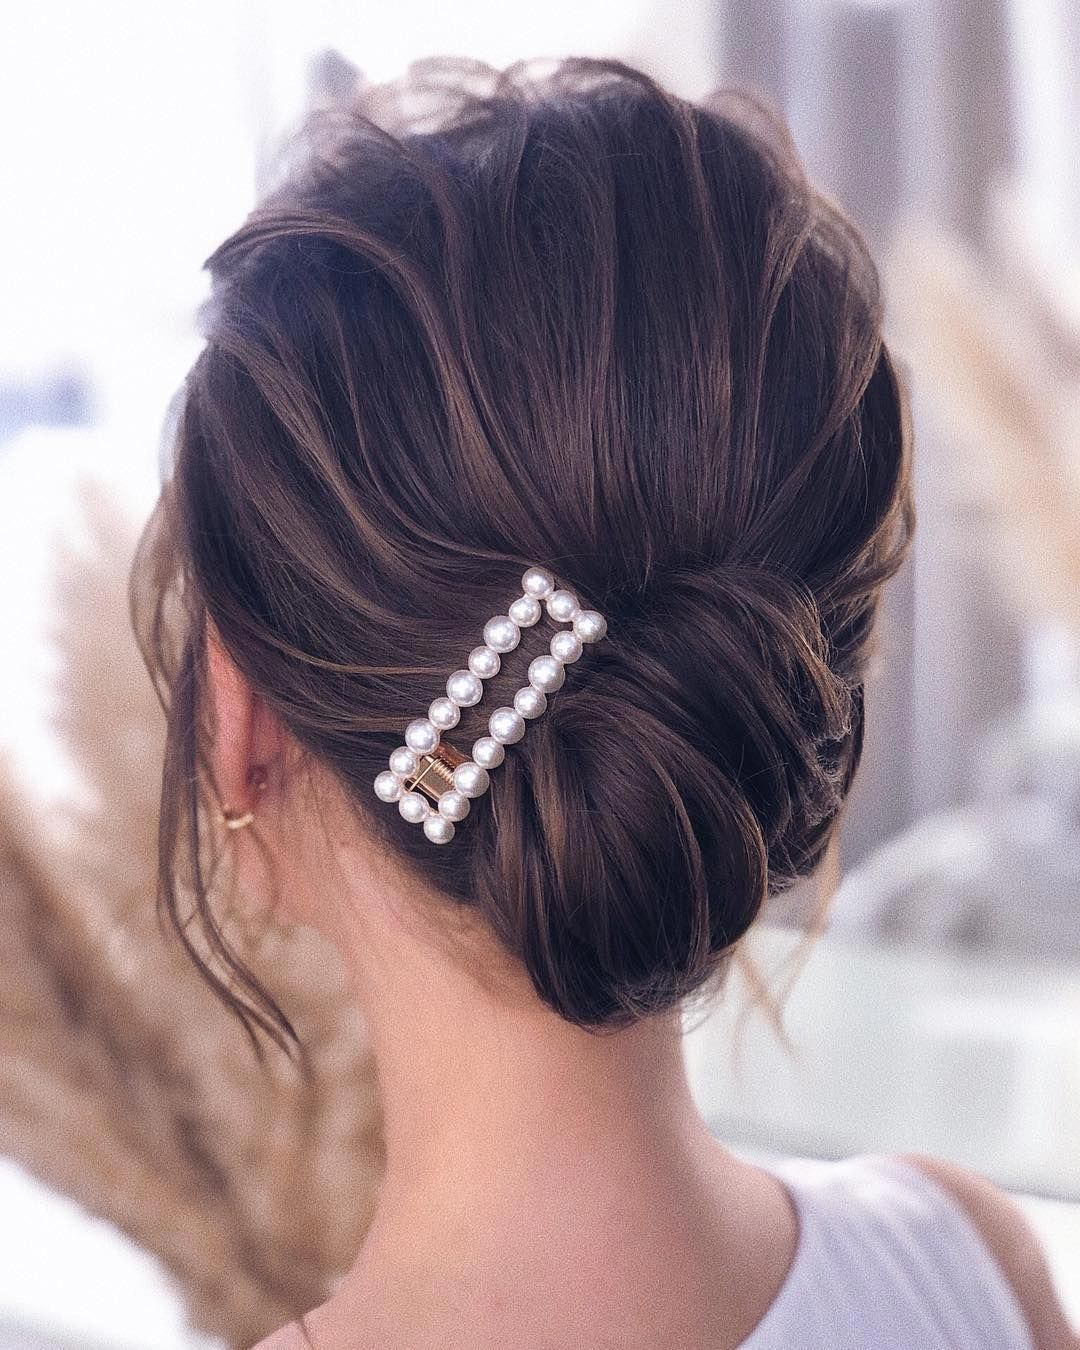 Do you wanna learn how to styling your own hair? Well, just visit our web site to seeing more amazing video tutorials! #hairtutorial #braidtutorials #hairvideo #videotutorial #updotutorial #updoideas #weddinghair #bridalhair #messyUpdos #hairclips